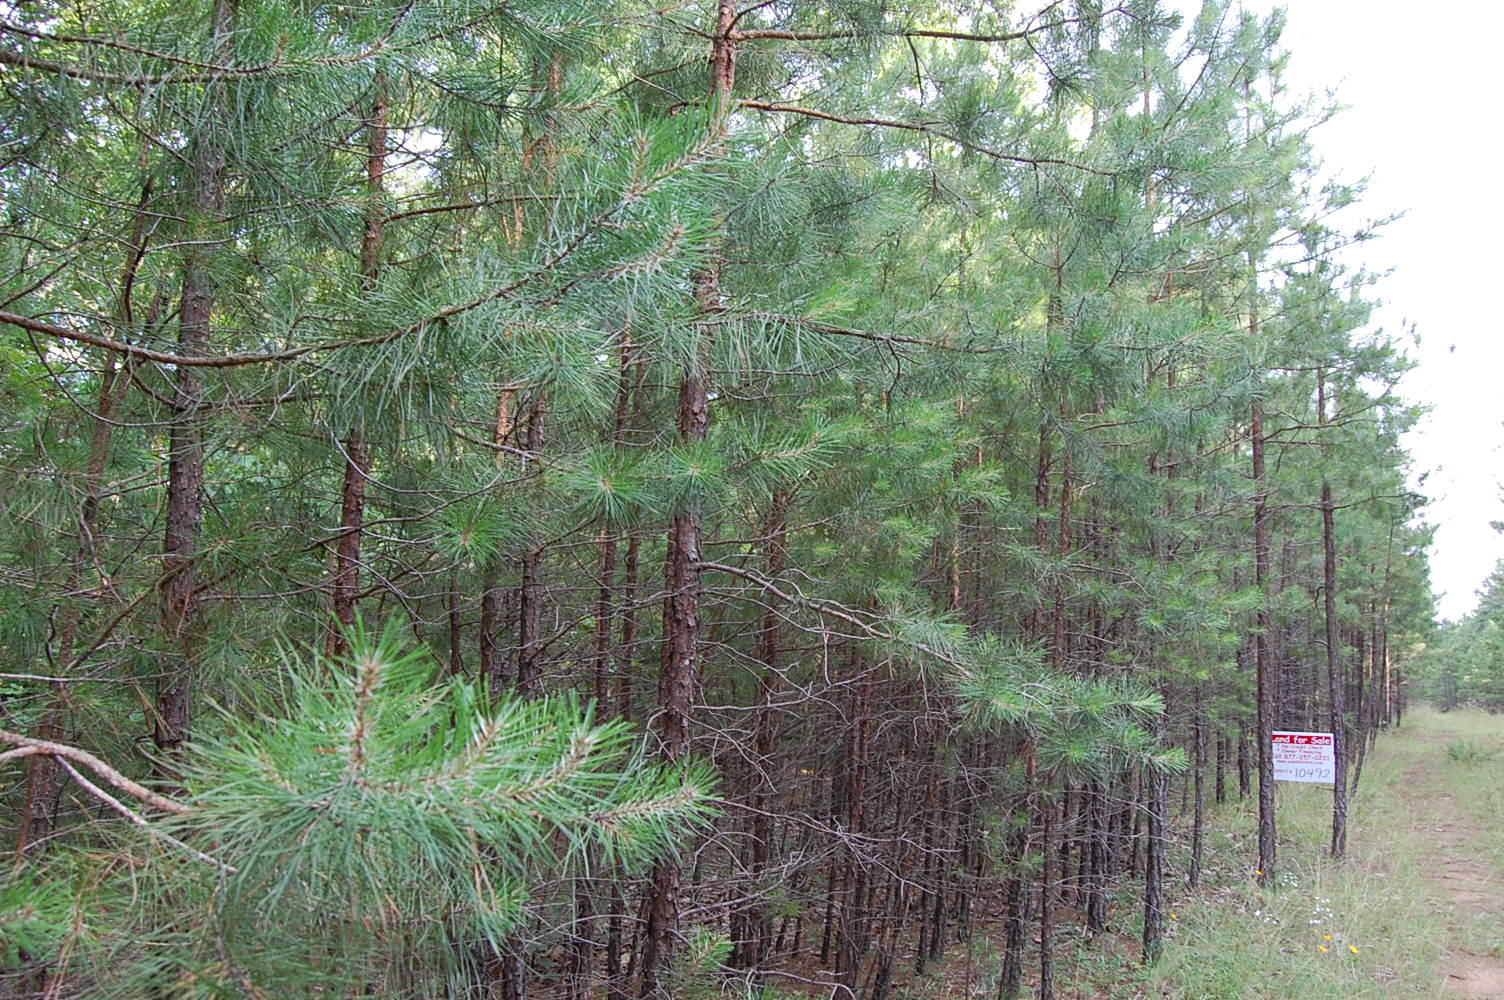 Residential Lot North of Greers Ferry Lake - Image 0